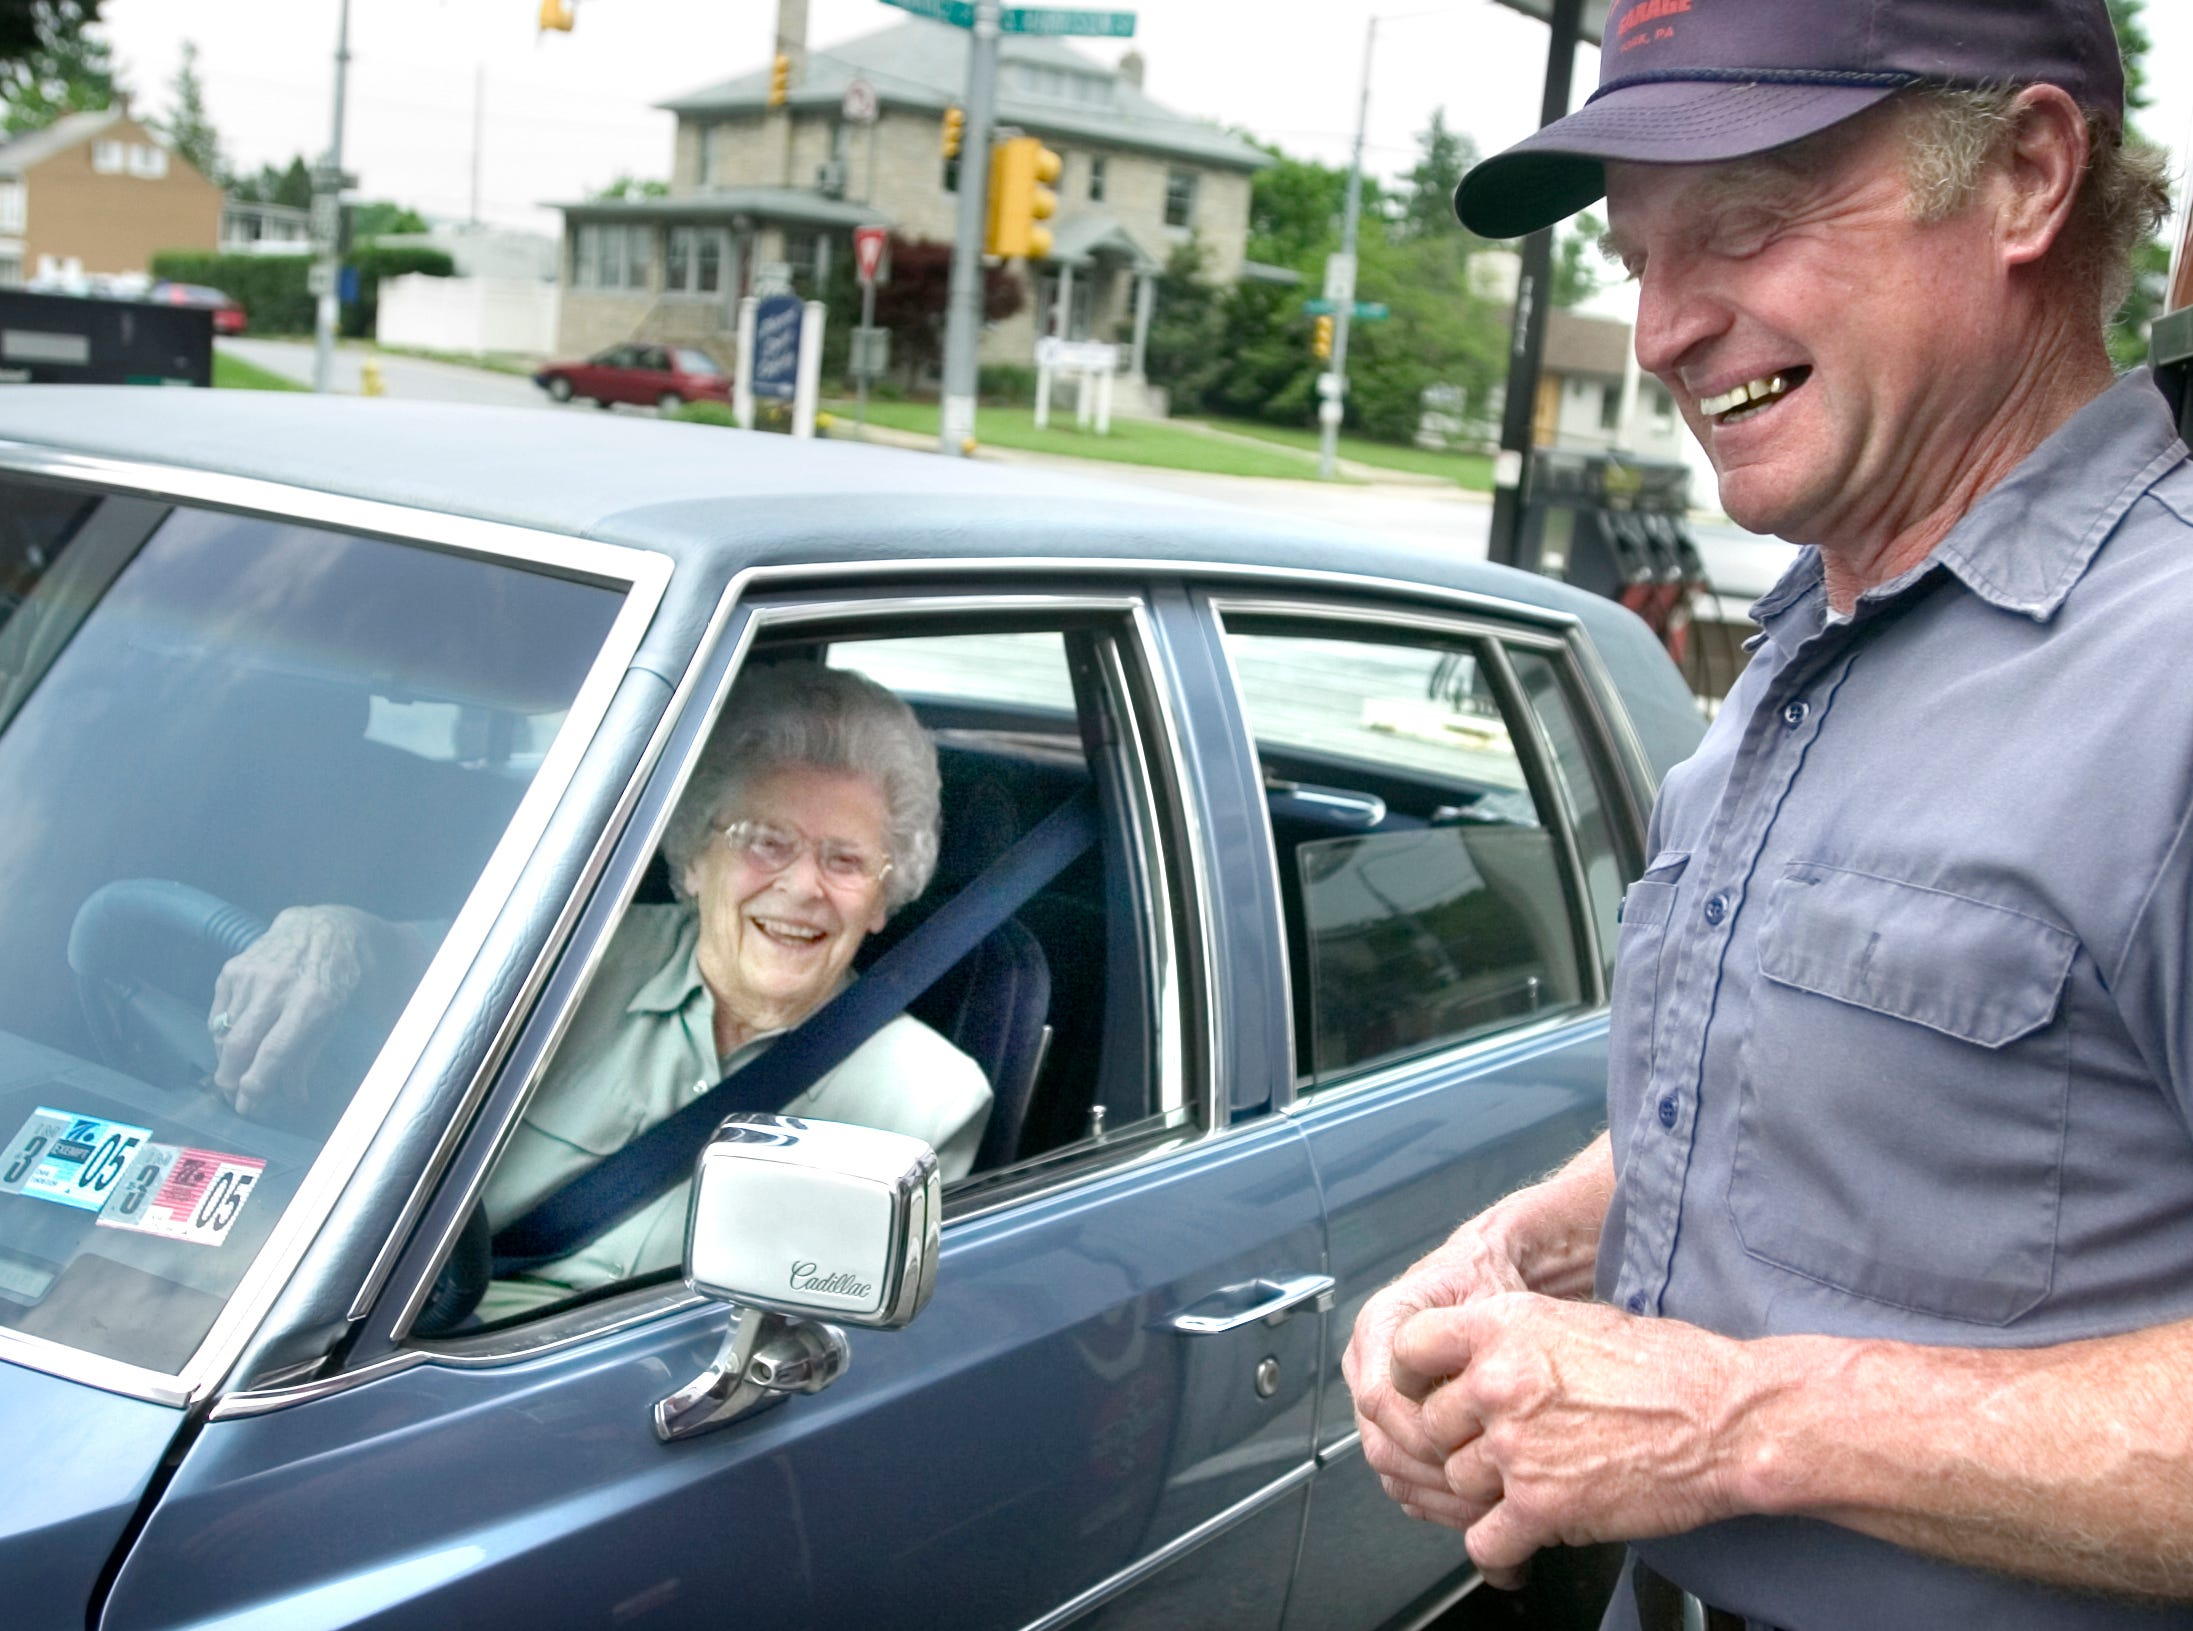 Lynn Haines' mother, Alva, stops by the Lincoln Highway Garage's pumps on May 11 2004.